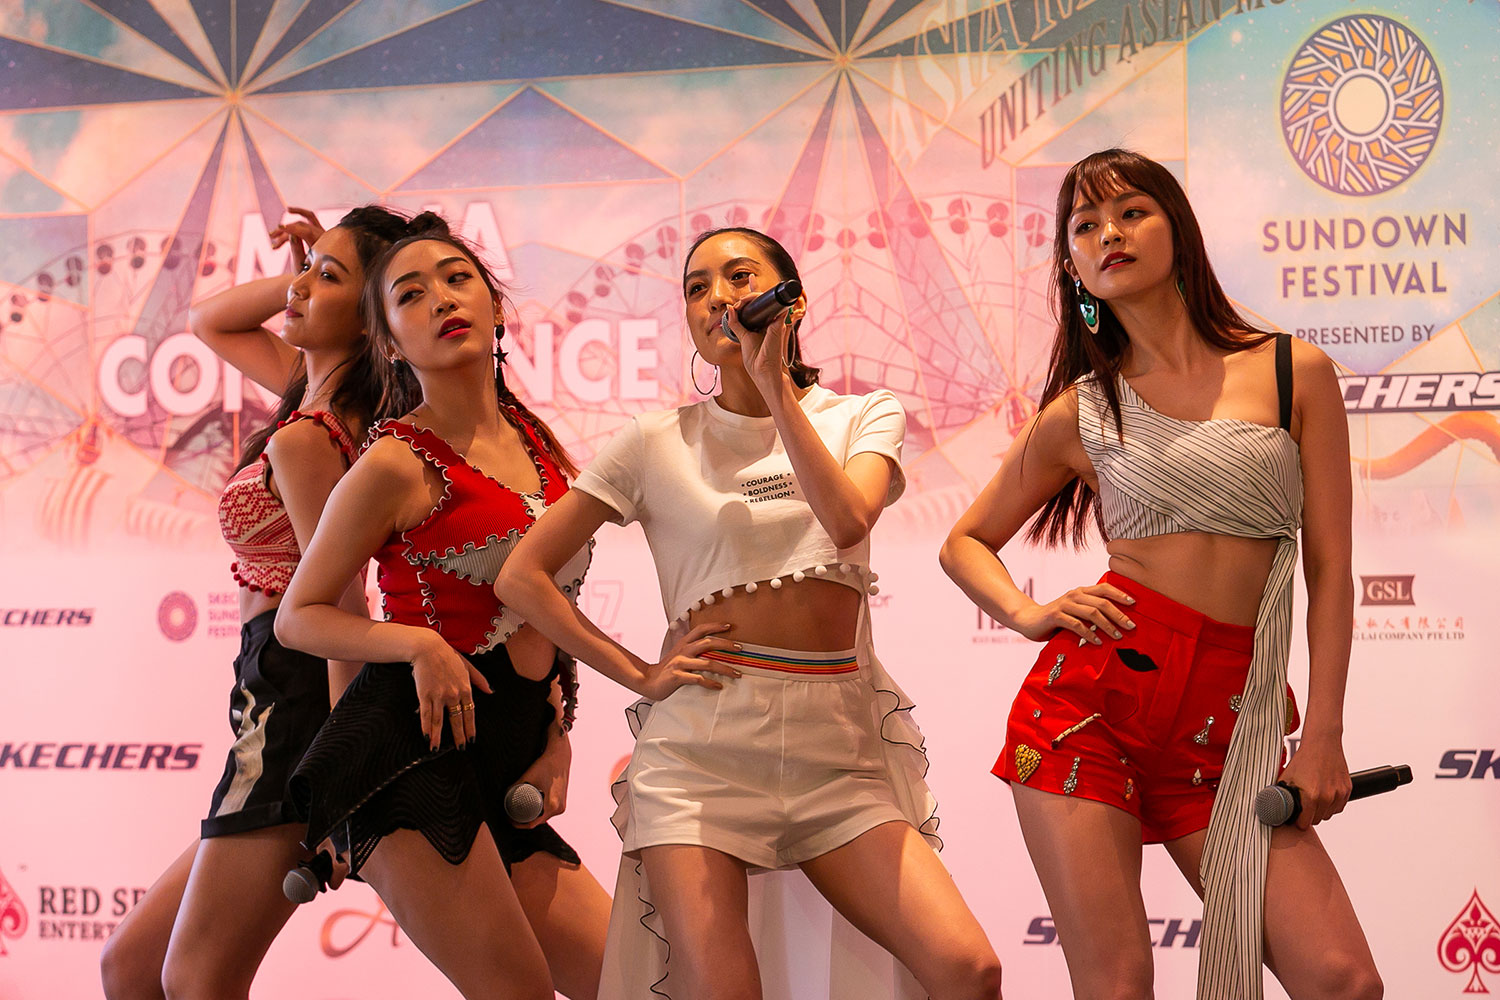 Skechers Sundown Festival is back in Singapore for its 10th edition